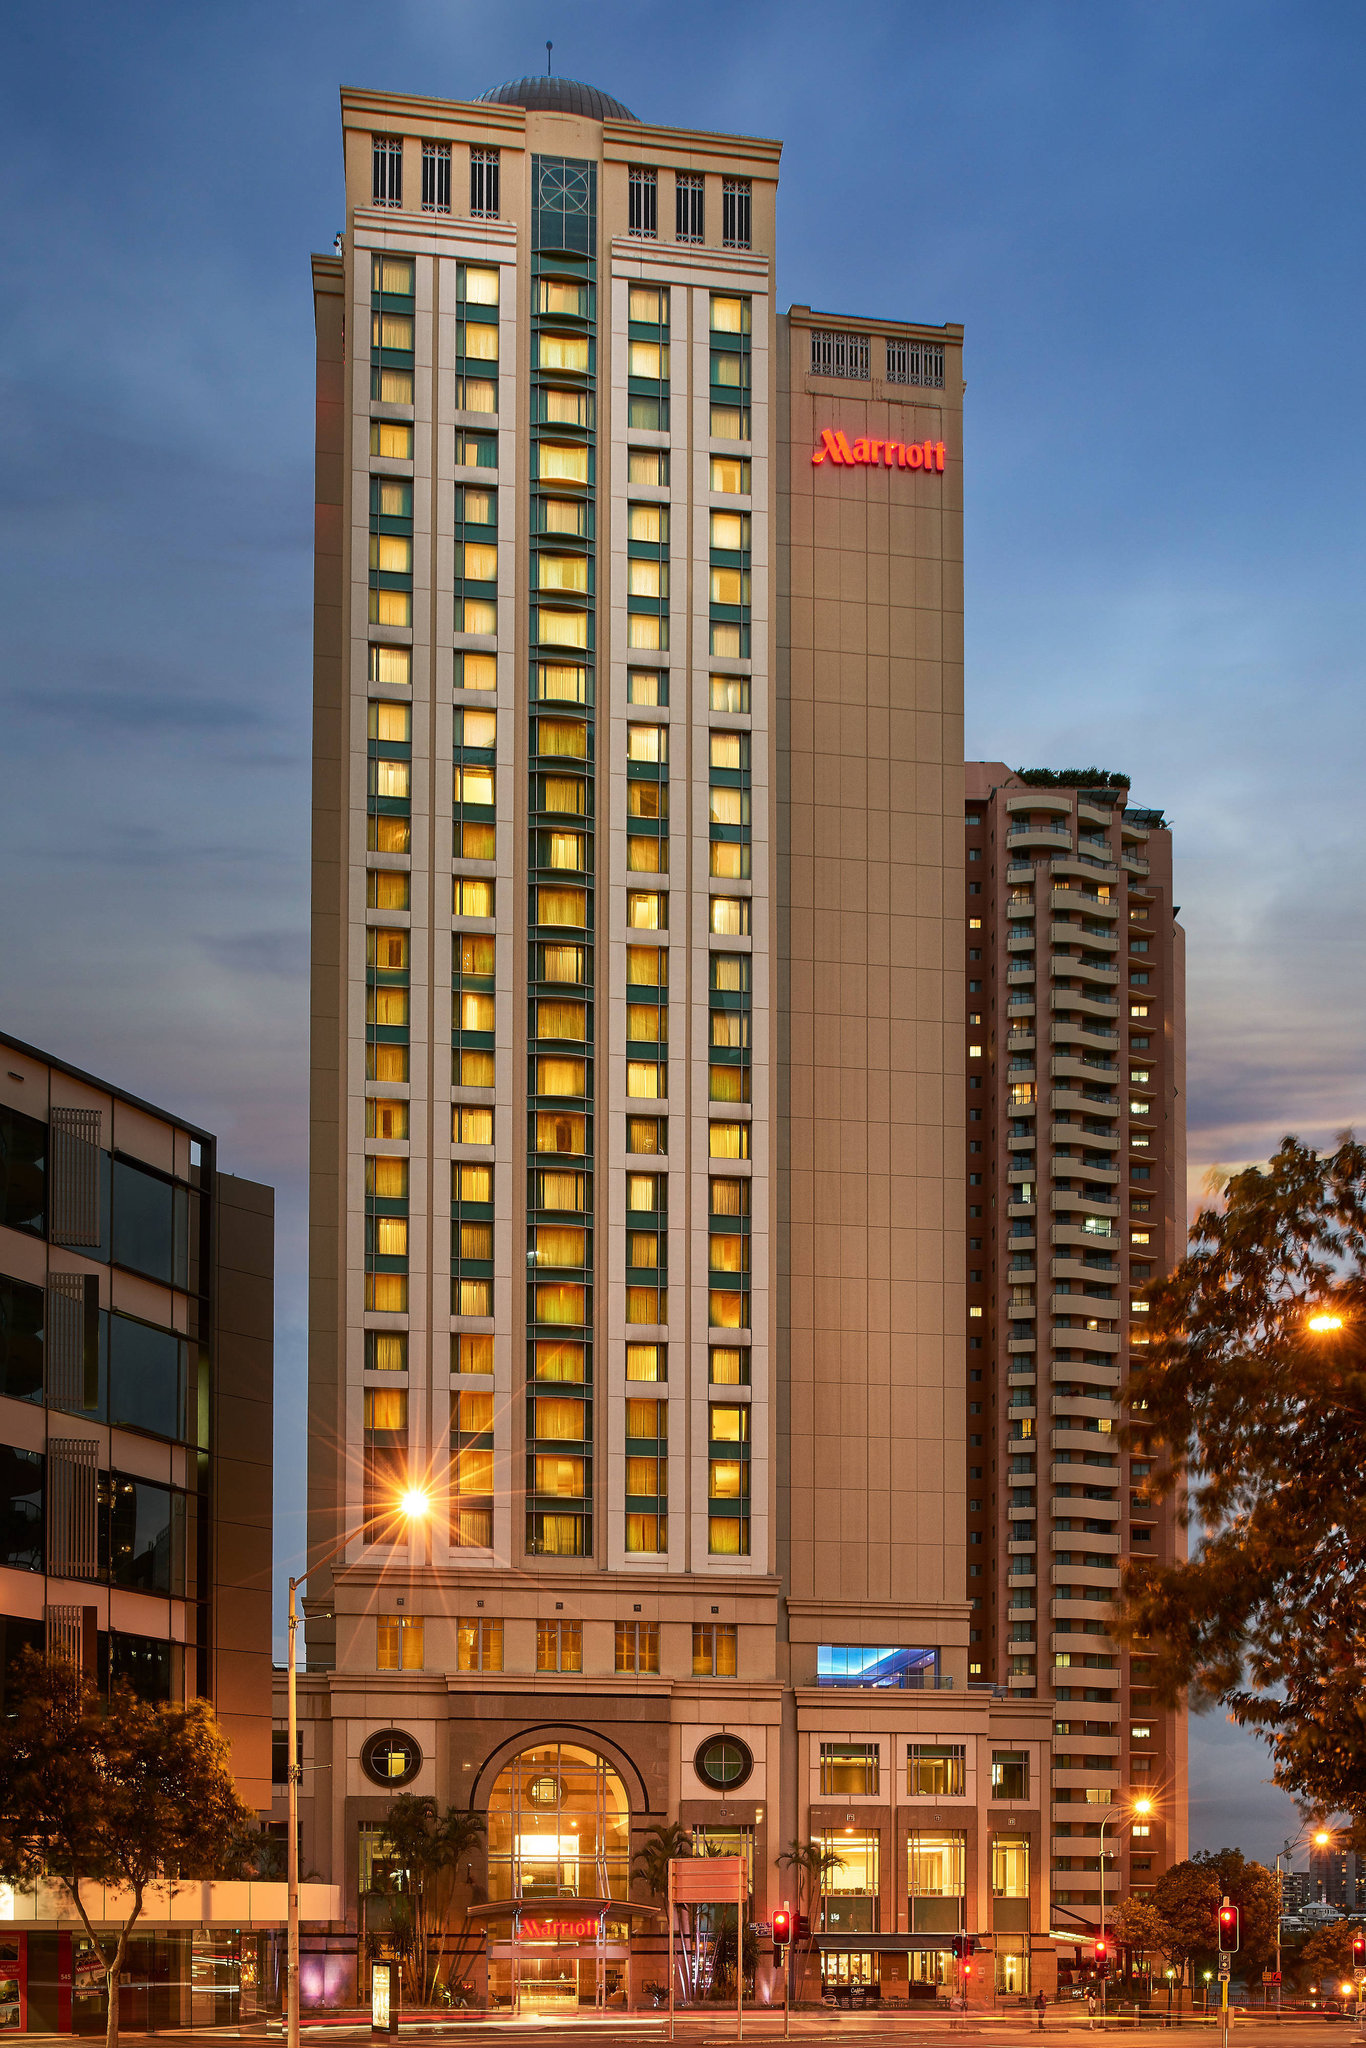 Marriott Brisbane Hotel